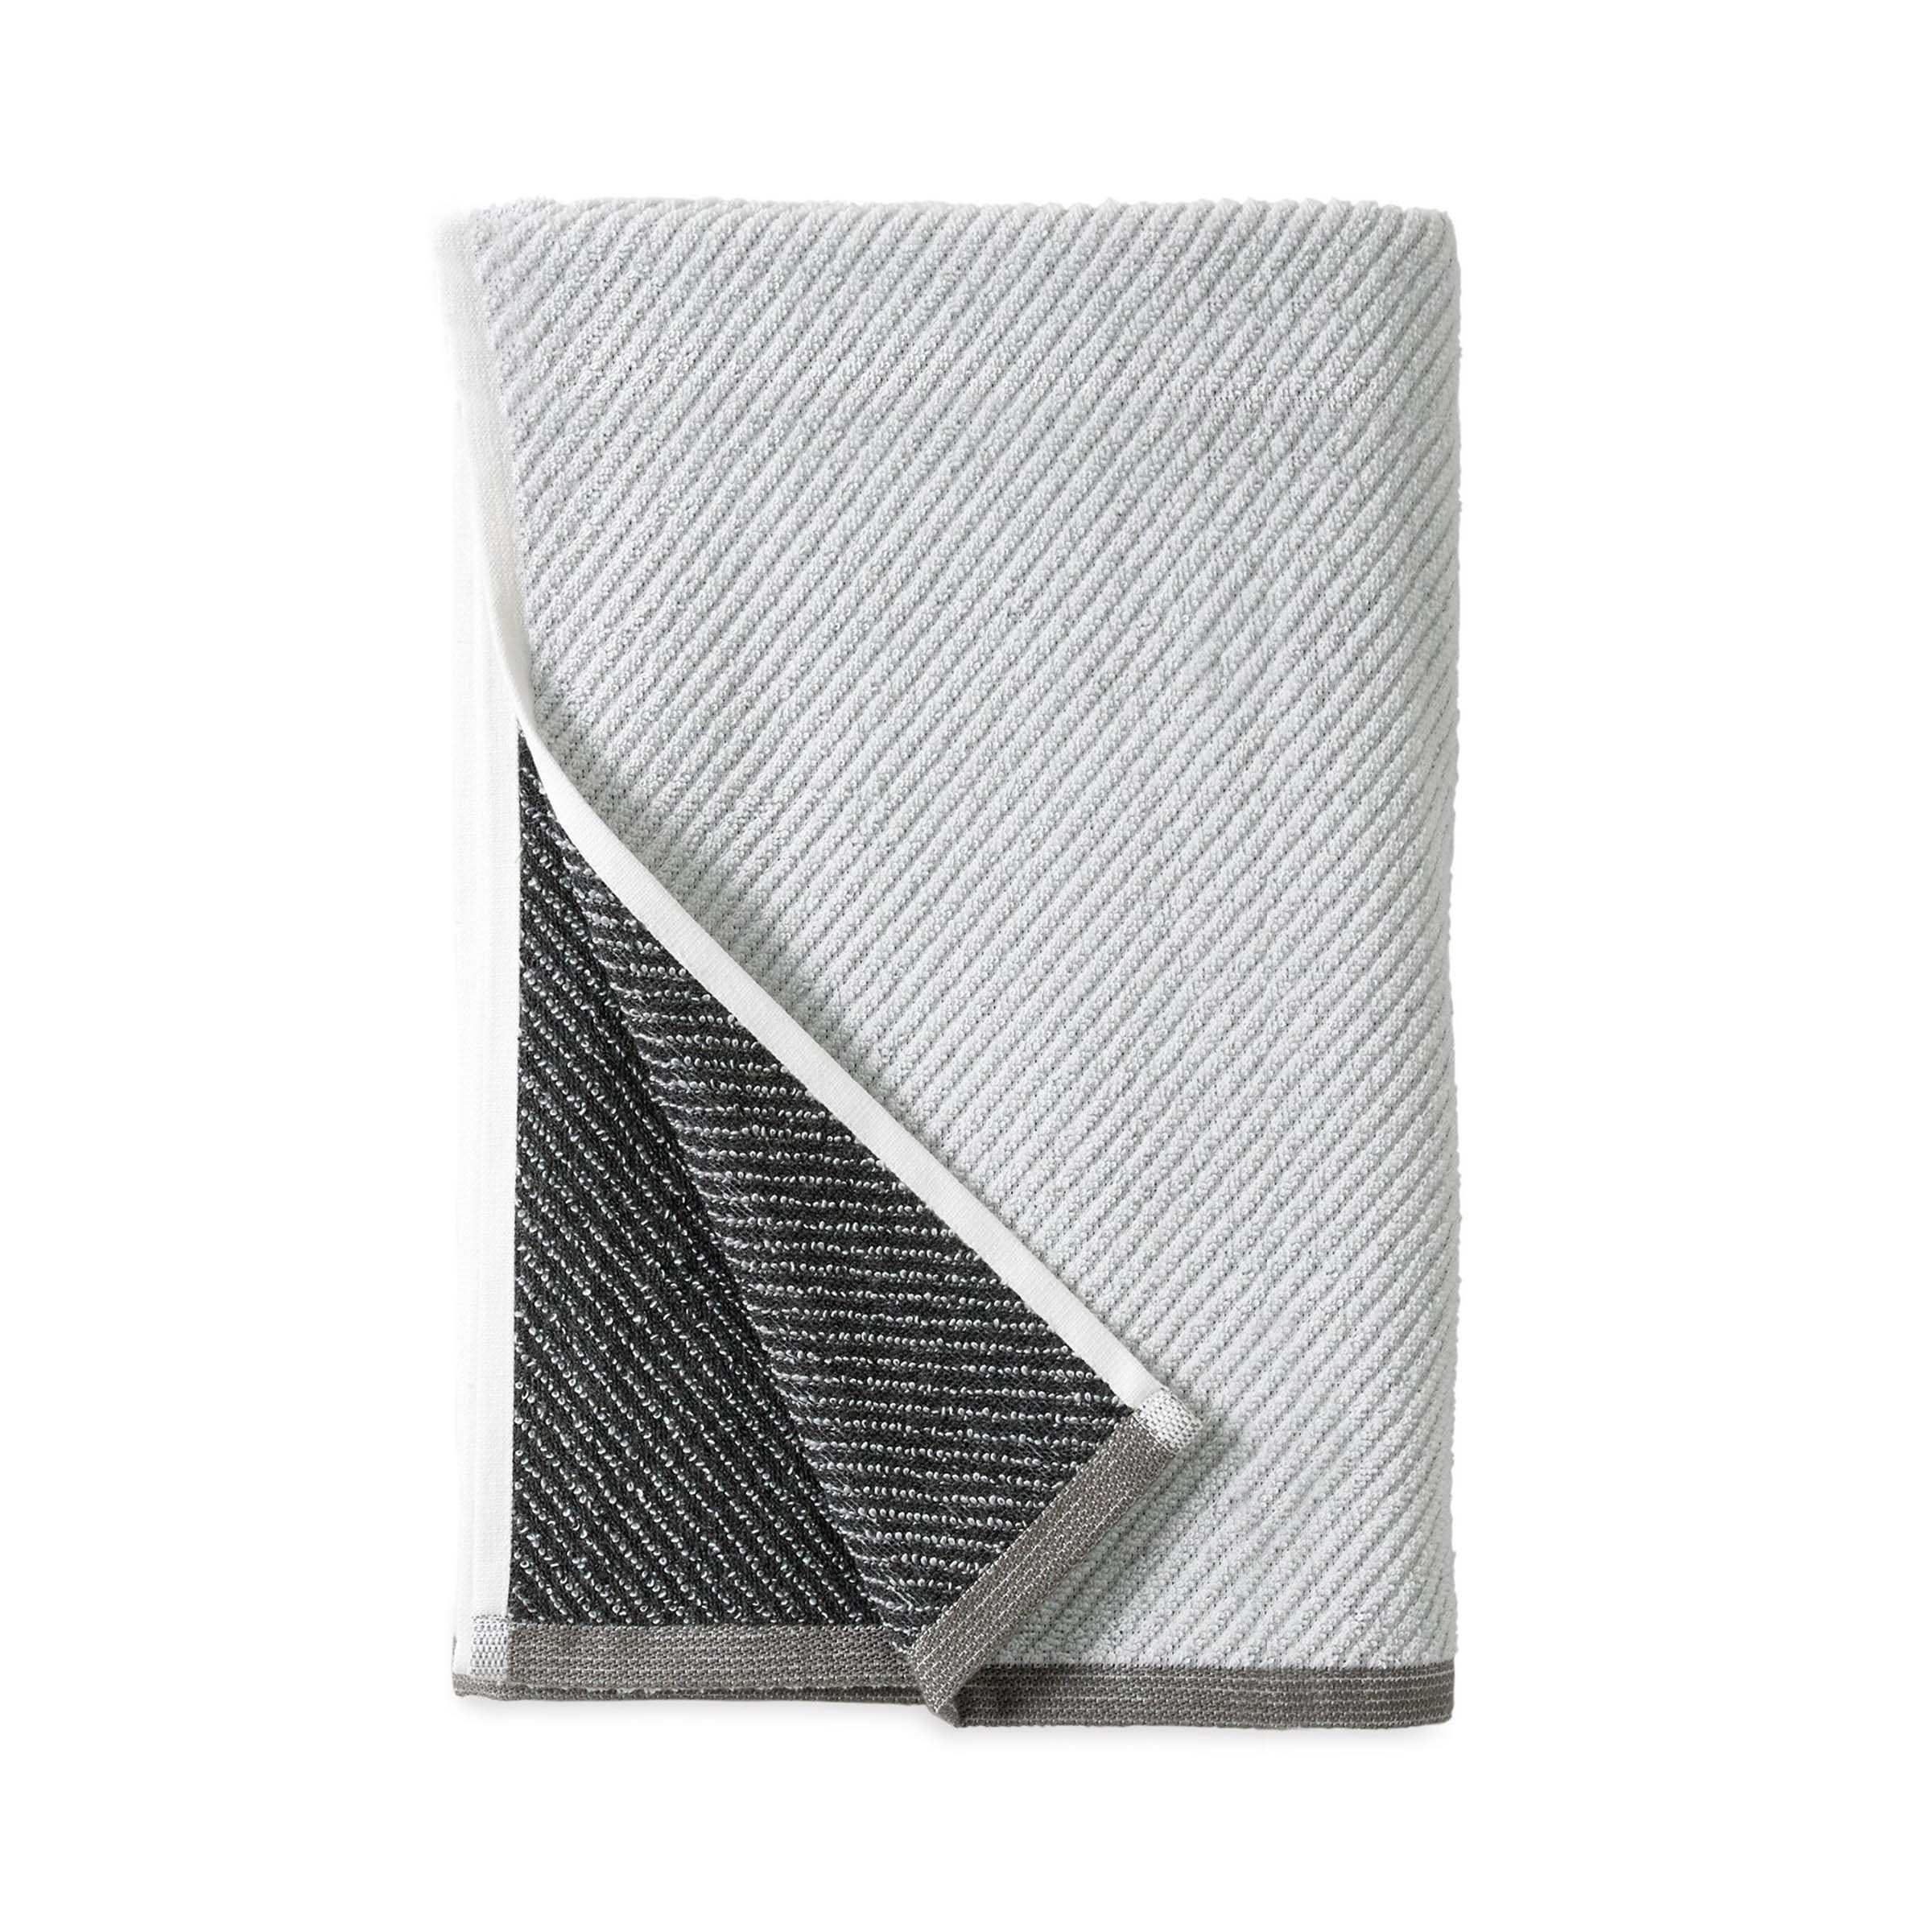 Wellbe Refresh 4 Pack 2 Hand Towels 2 Bath Towels White Bedeck Home